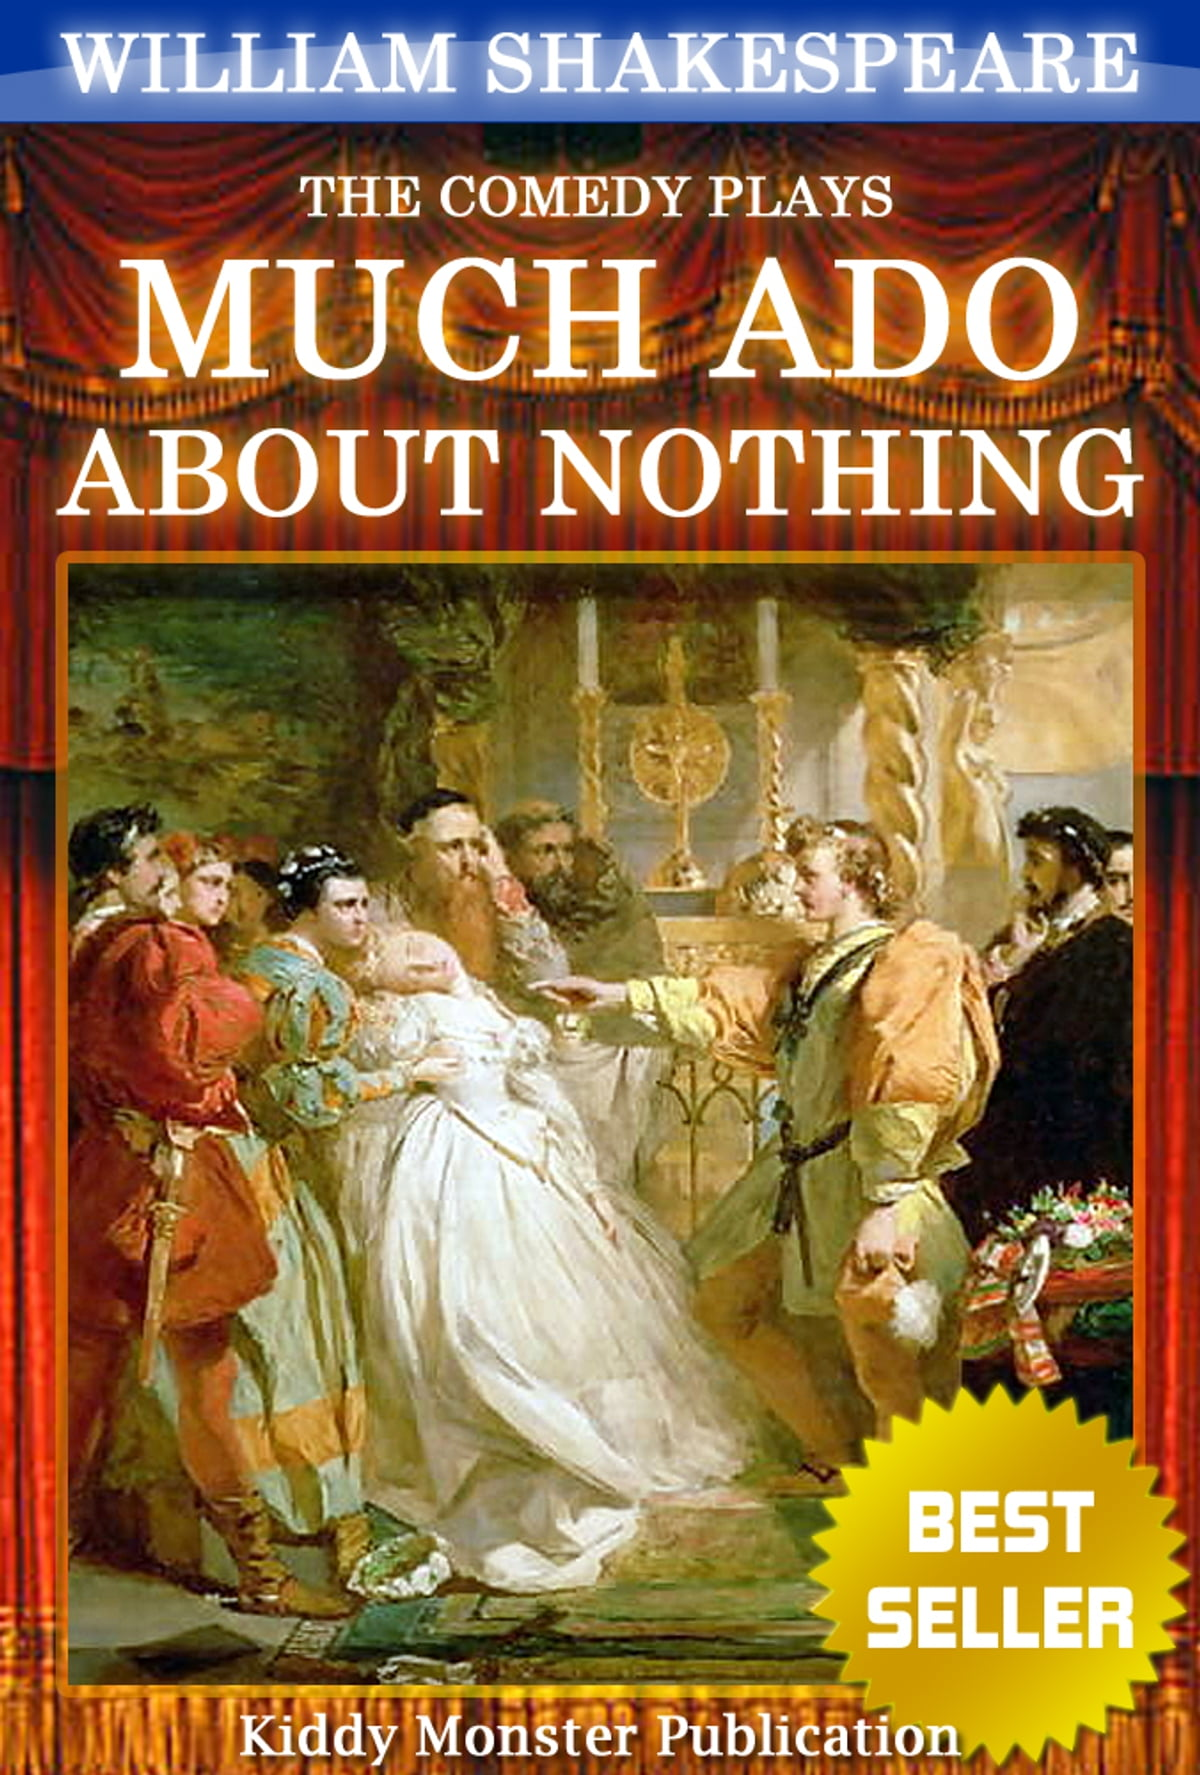 an analysis of the play much ado nothing by william shakespeare Much ado act 1 scene 1 william shakespeare  full scene summary via hudson shakespeare company:  much ado about nothing (characters of the play.